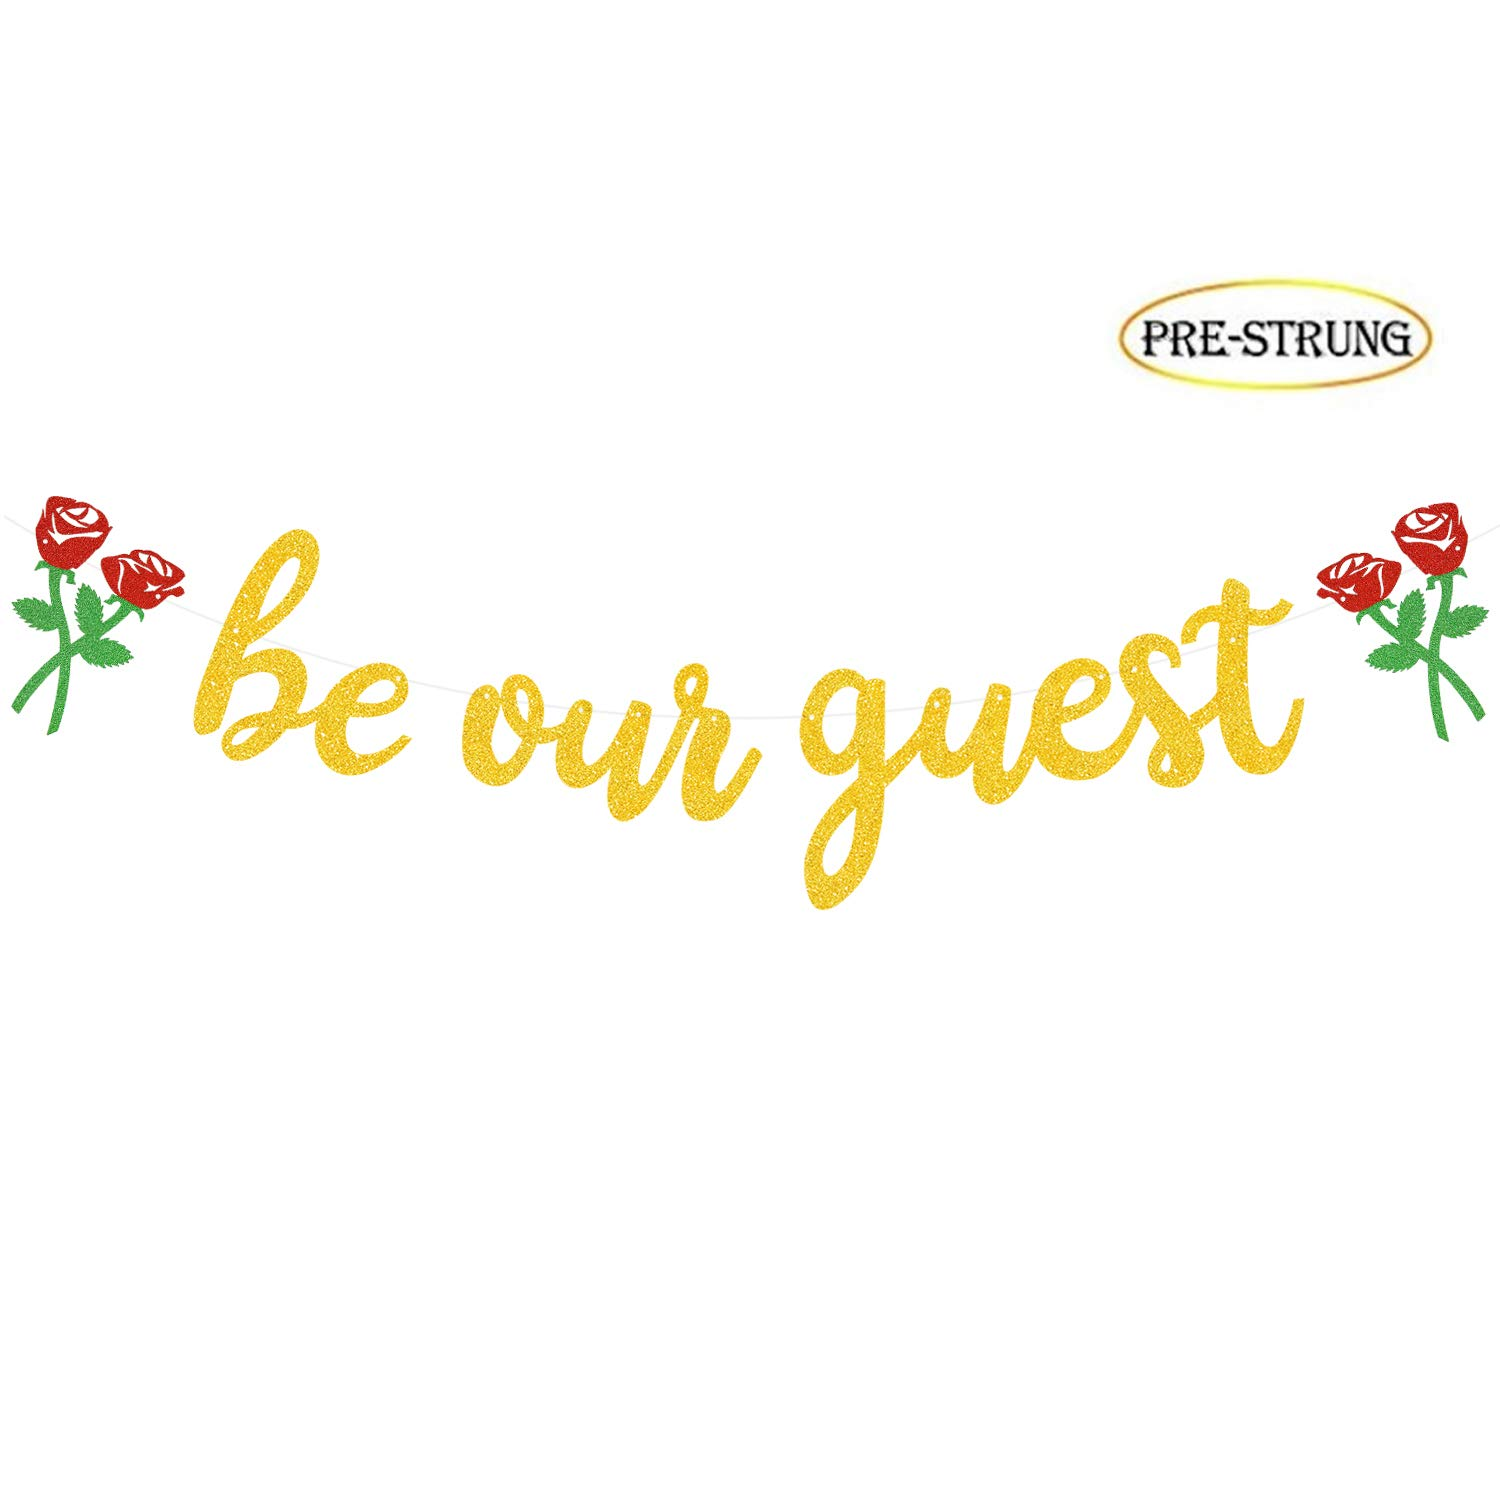 photograph regarding Be Our Guest Printable referred to as Be Our Visitor Banner, Reception Banner Bachelorete Bash Engagement Celebration Decorations